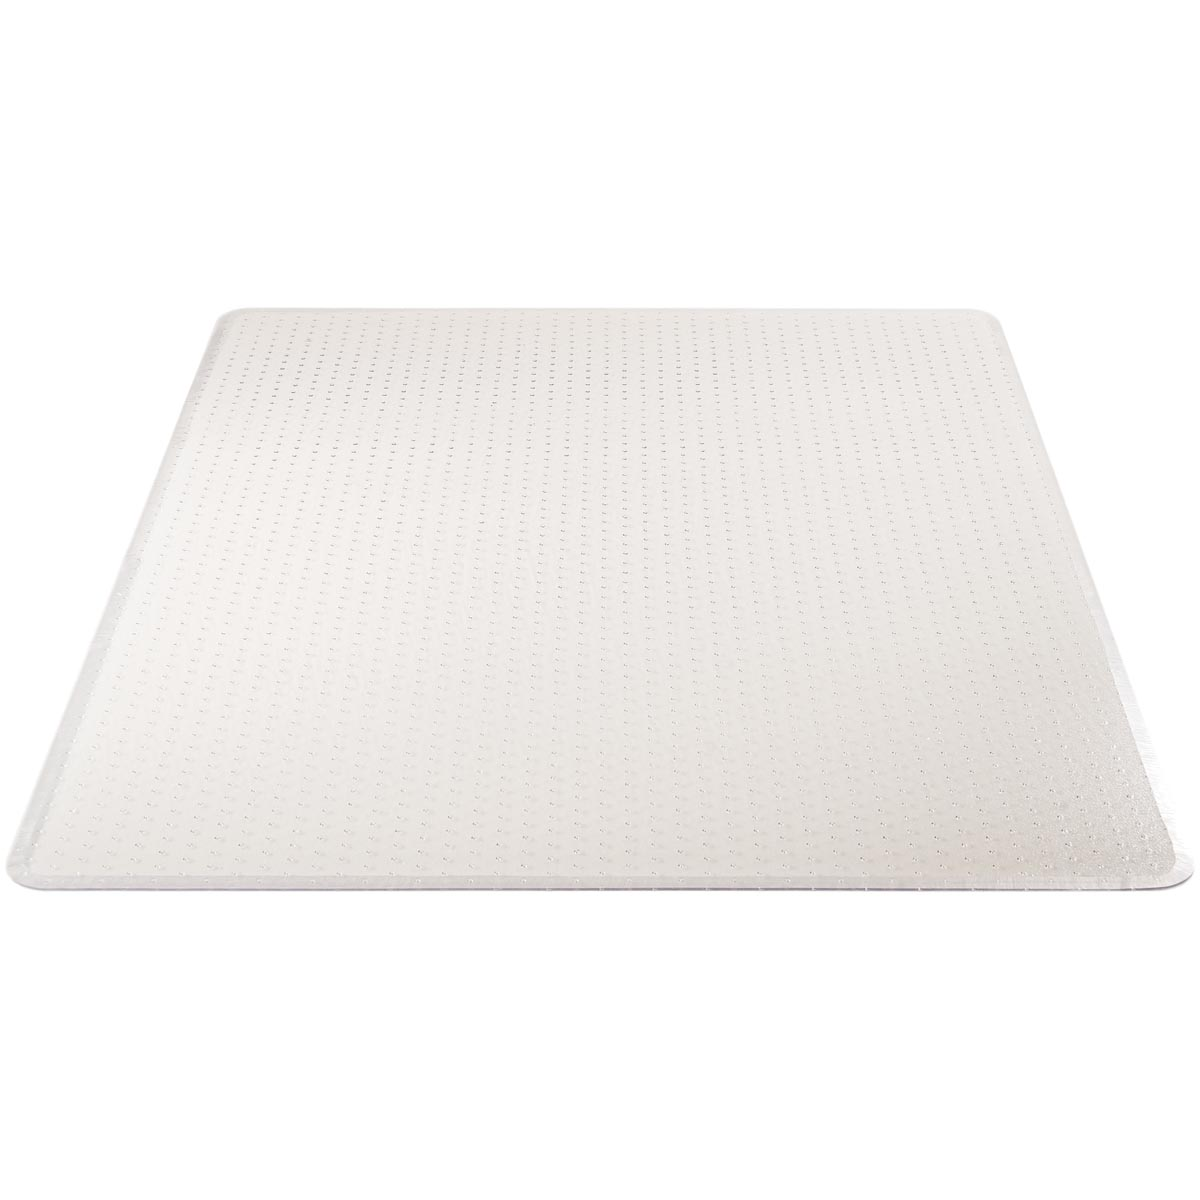 heavy duty office chair mat retro leather dining chairs uk execumat clear mats for high pile carpet schoolsin